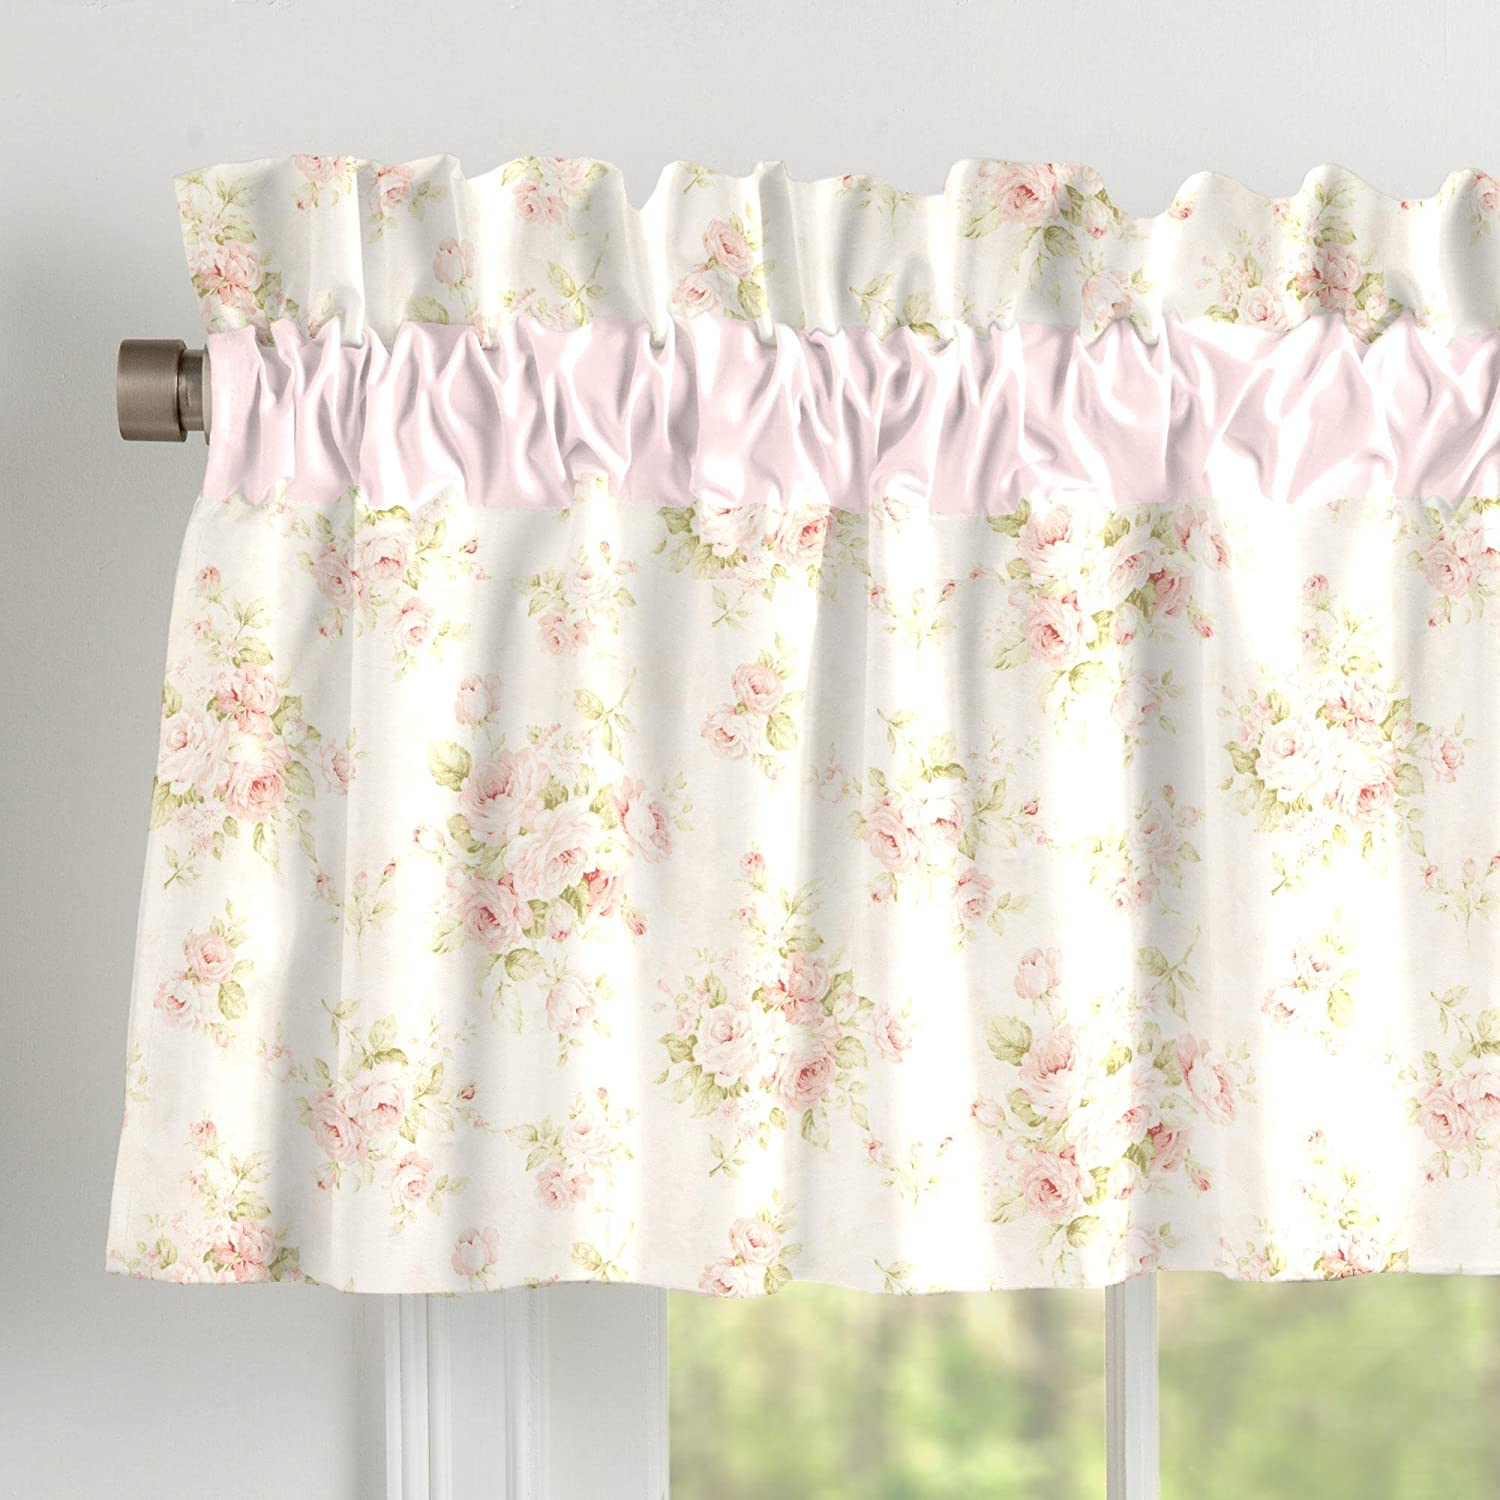 Carousel Designs Shabby Chenille Window Valance Rod Pocket